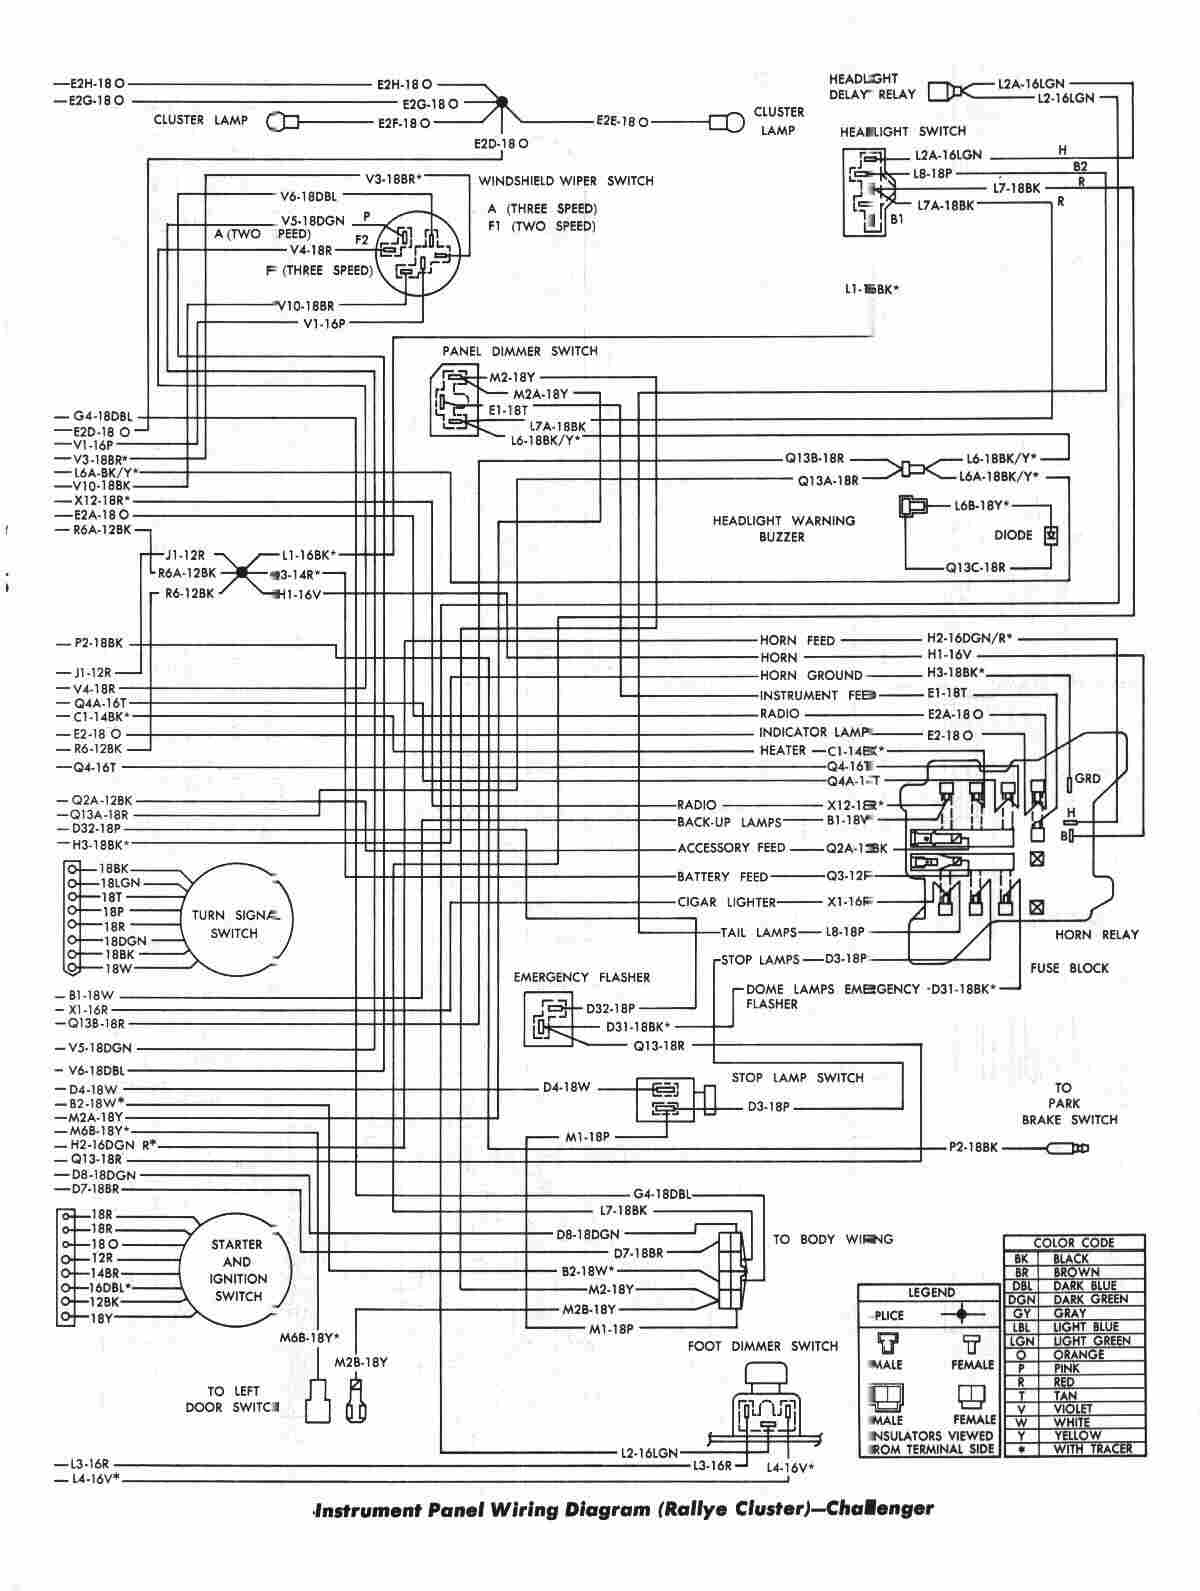 1970 Mustang Instrument Wiring Diagram Schematic Diagrams 70 Dash Dodge Challenger Panel 1969 Electrical